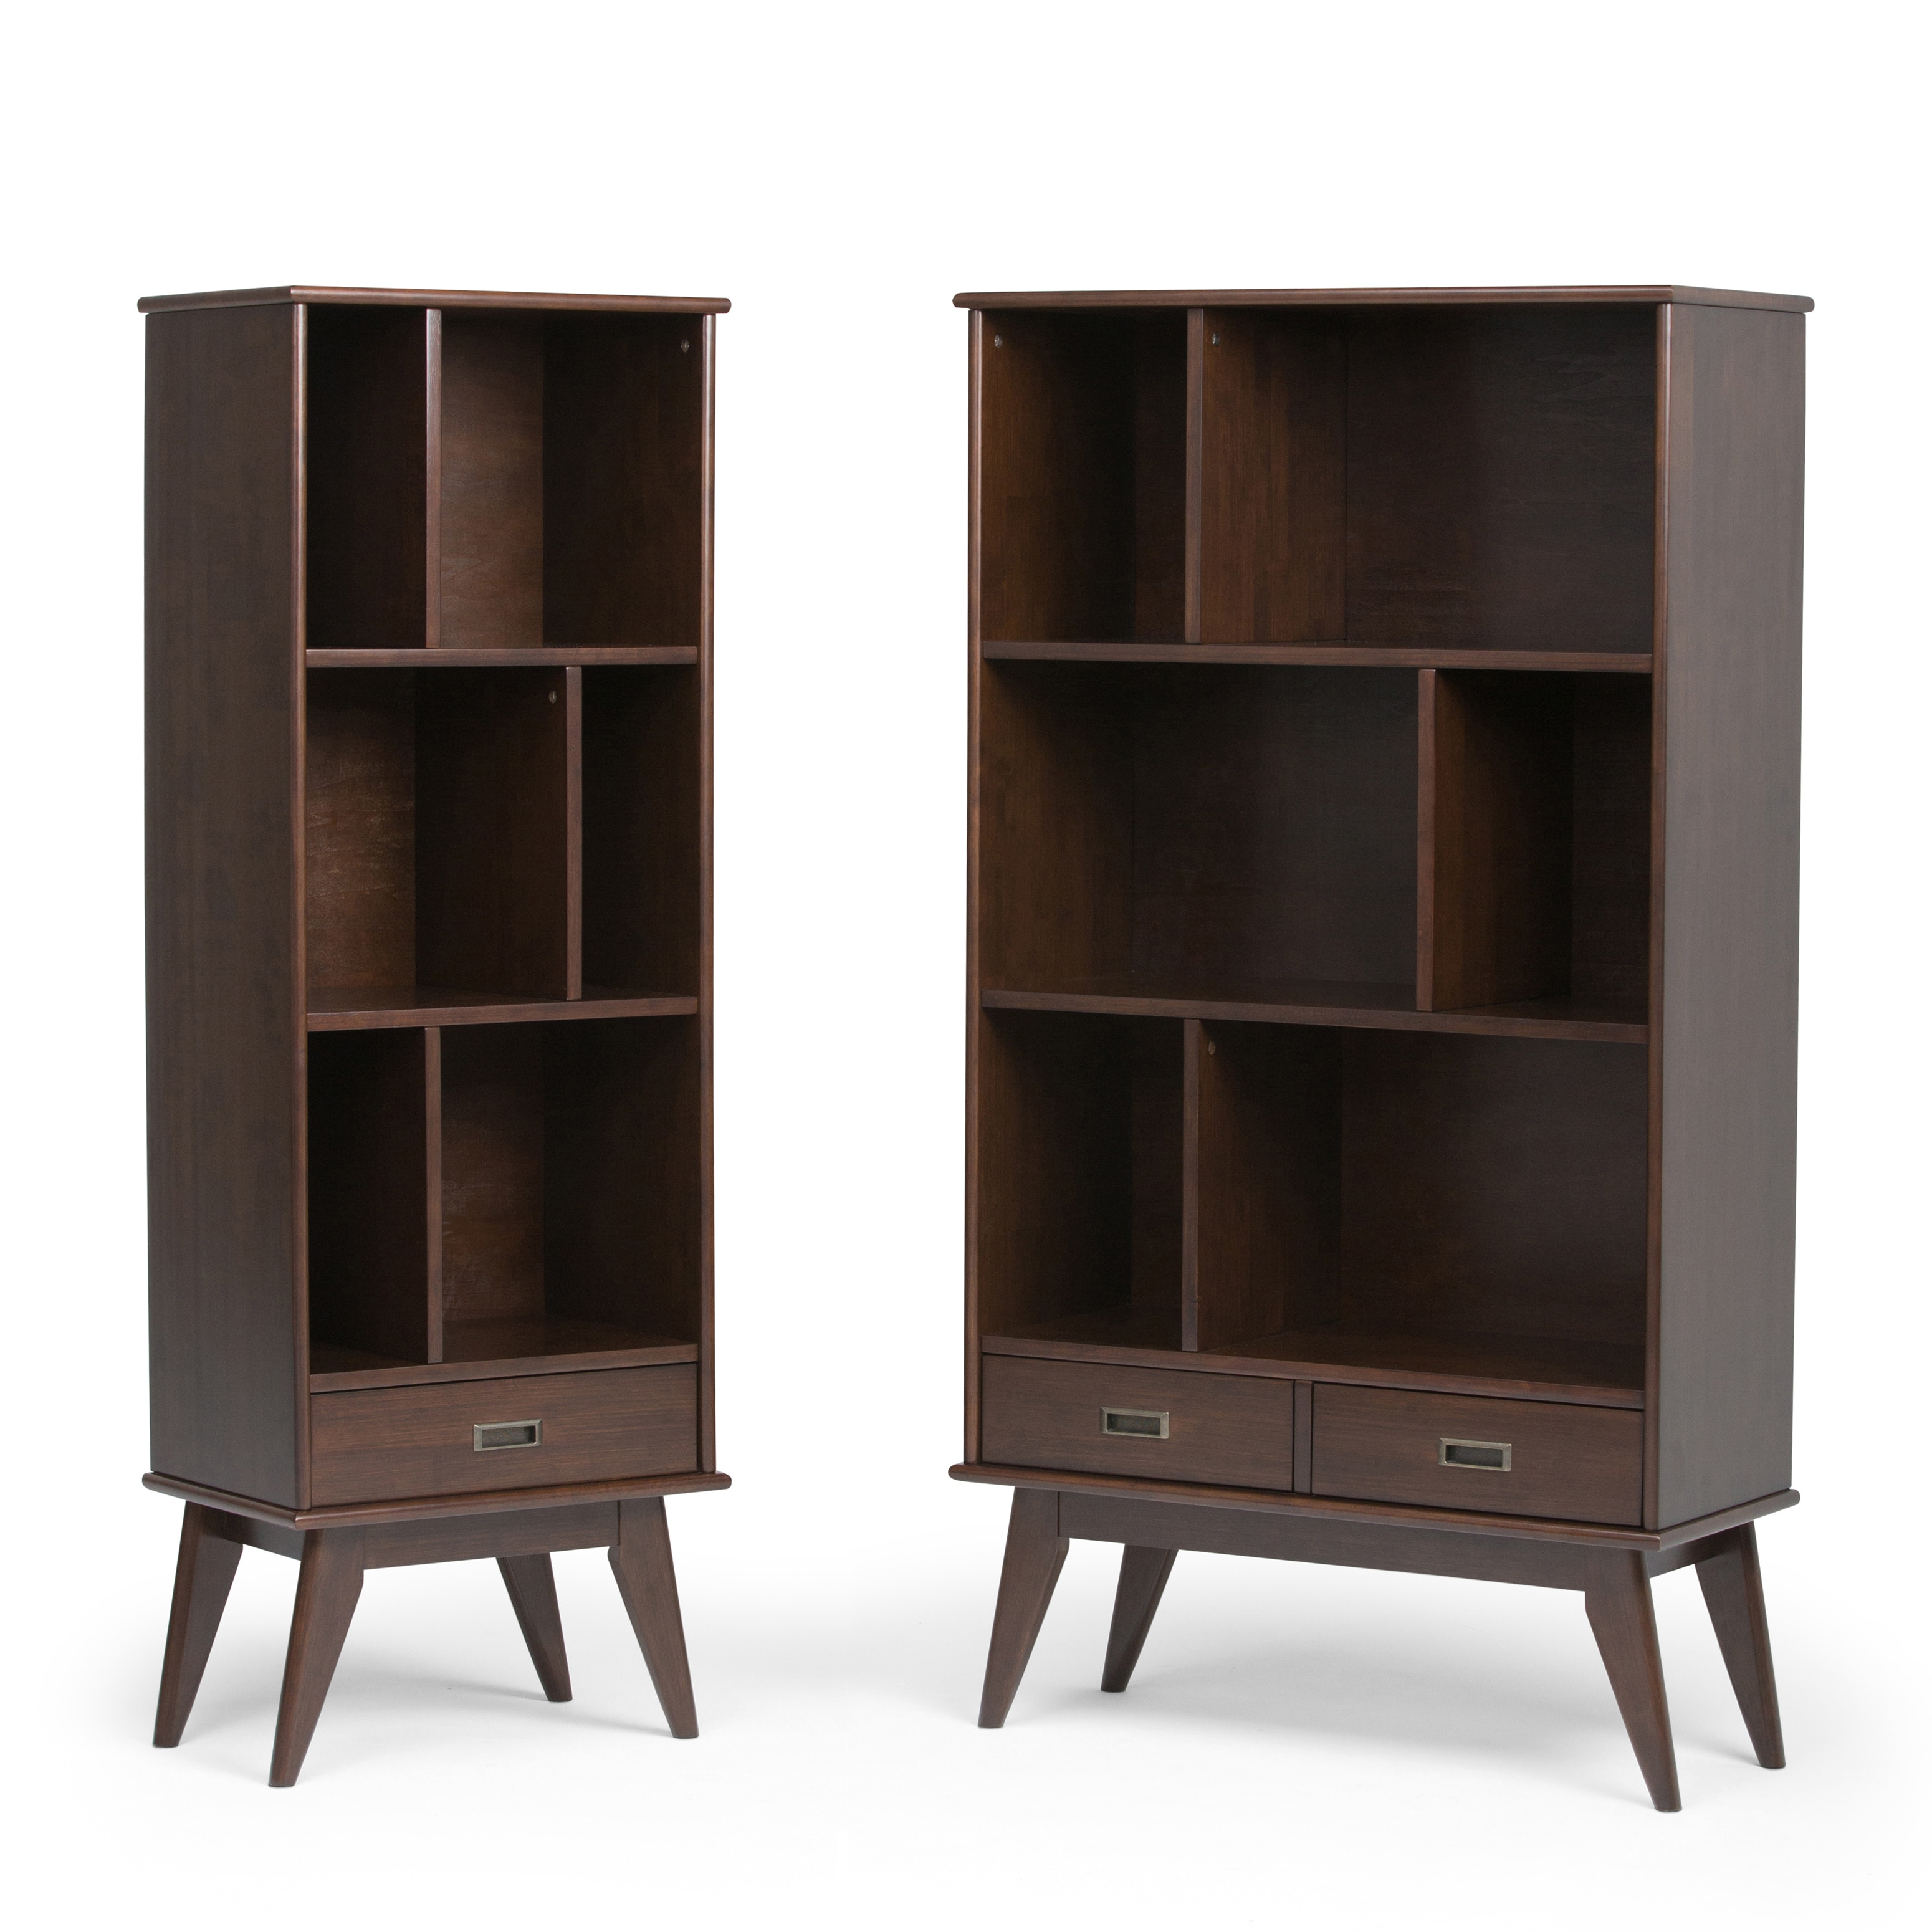 small decoration double bookcases wooden corner leaning bookshelf deep where with origami bookcase five thin wide bookshelves white espresso buy tall shelf drawers to